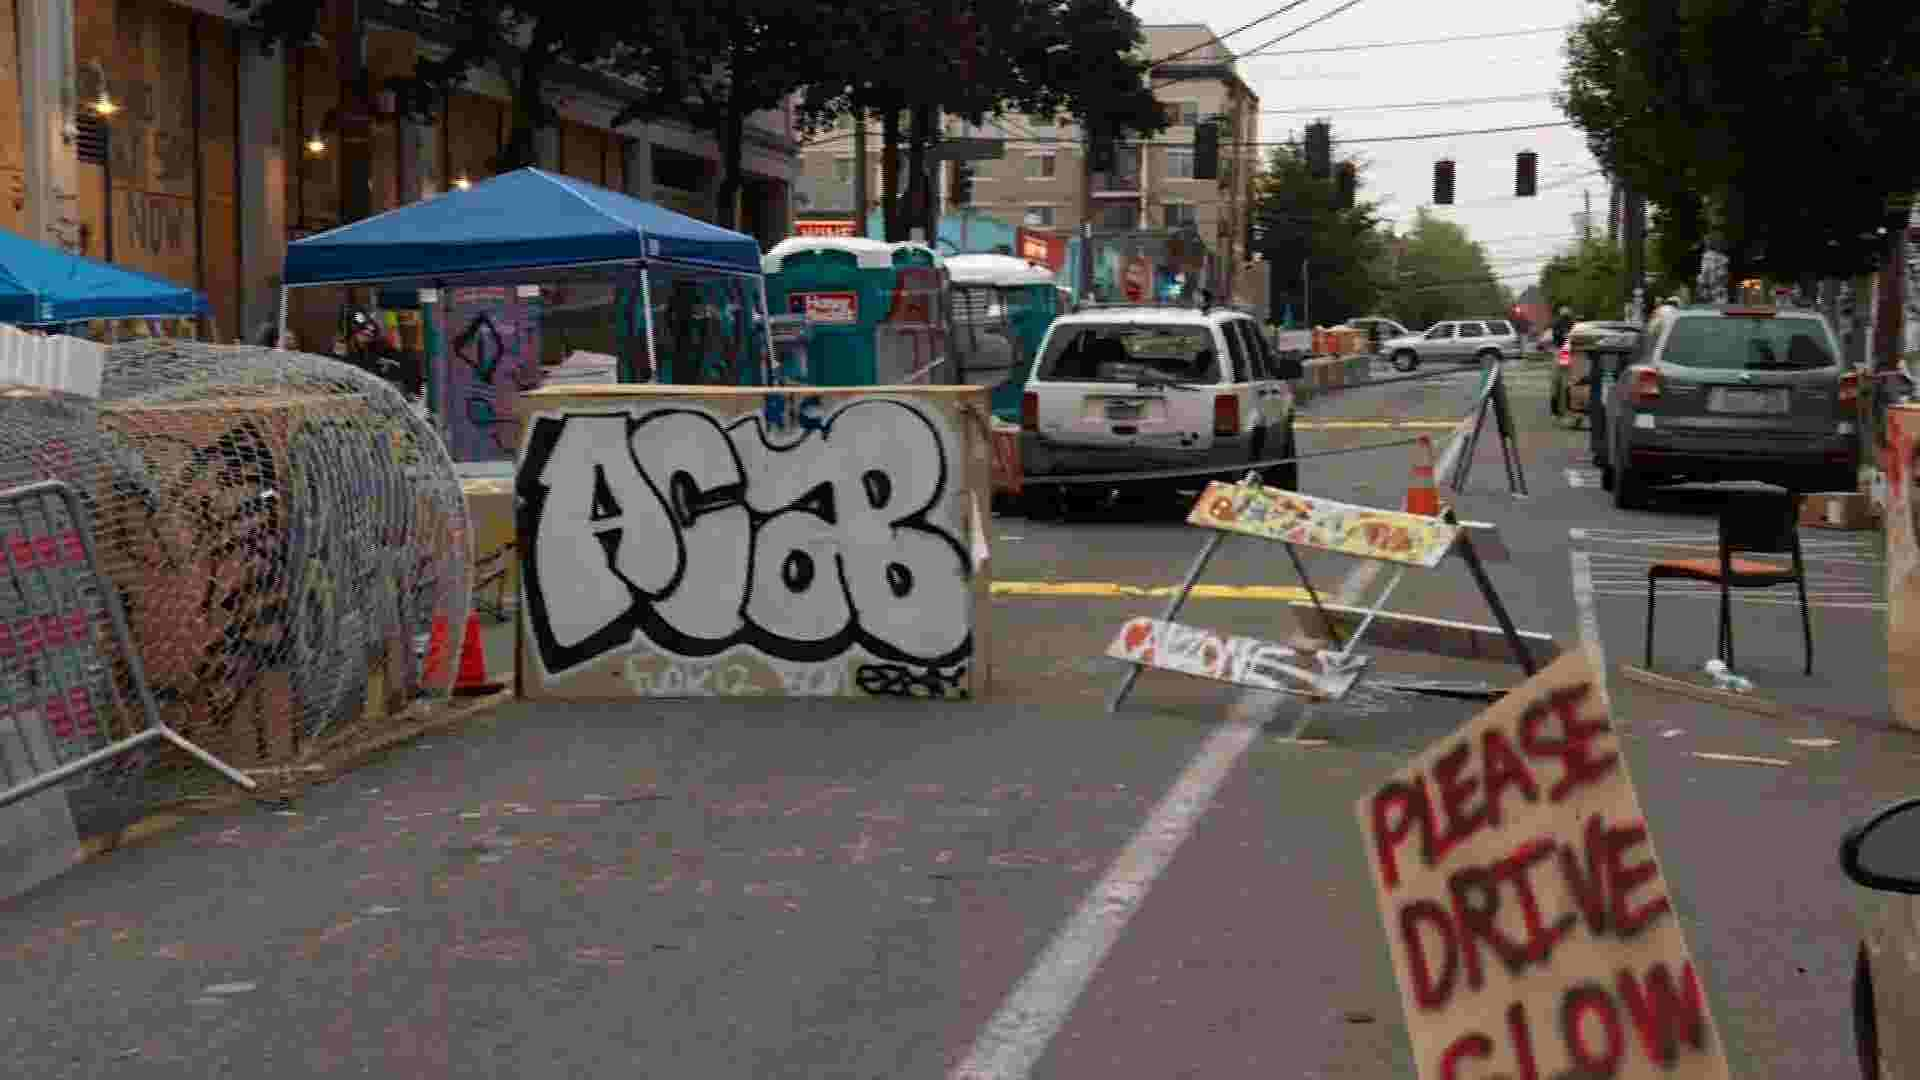 Shooting at Seattle CHOP protest area leaves 1 dead thumbnail